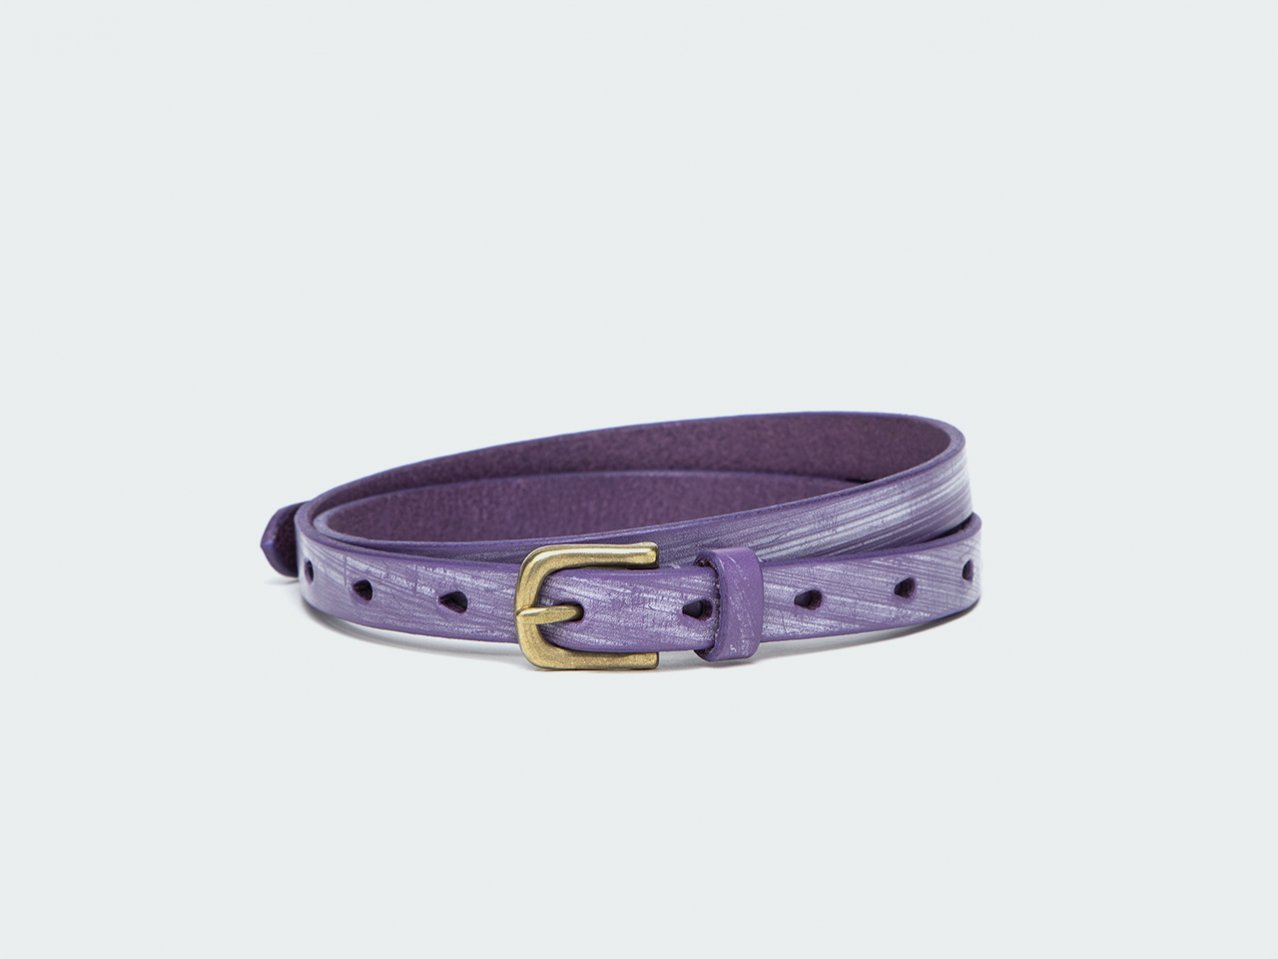 NARROW STANDARD (Bridle) 15 / PURPLE